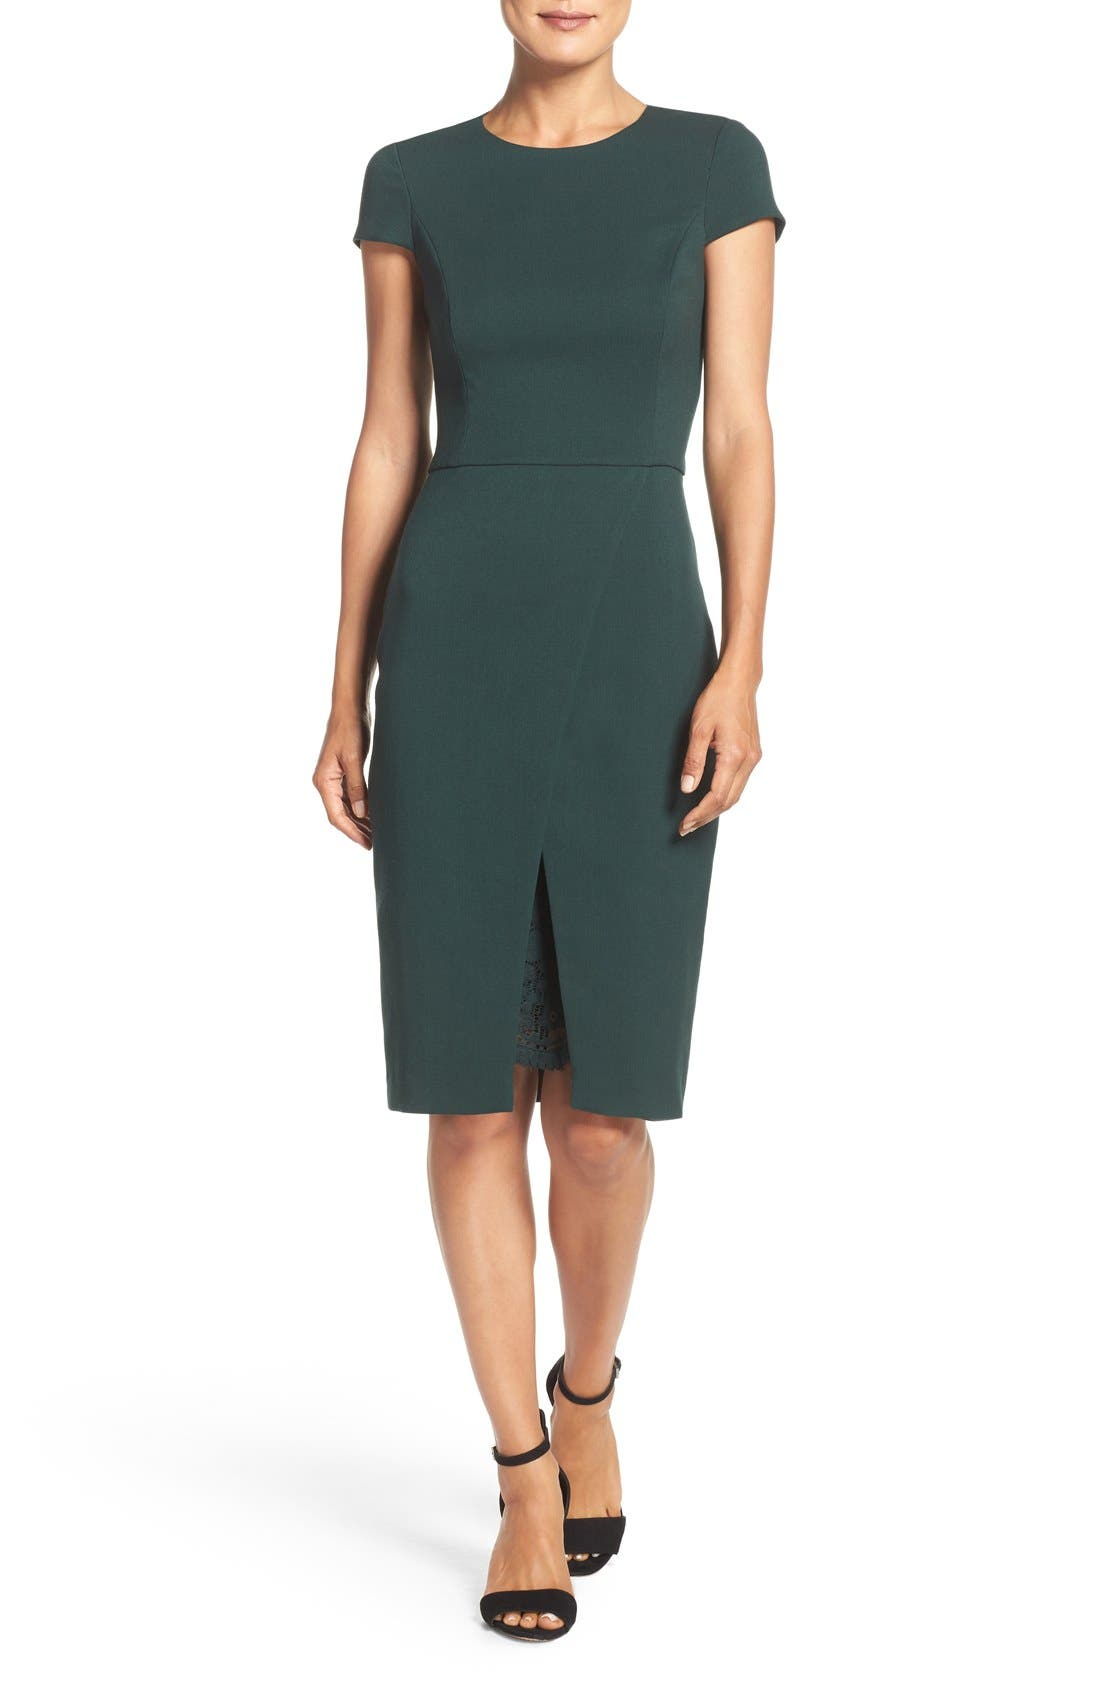 Main Image - Vince Camuto Midi Sheath Dress (Regular & Petite)